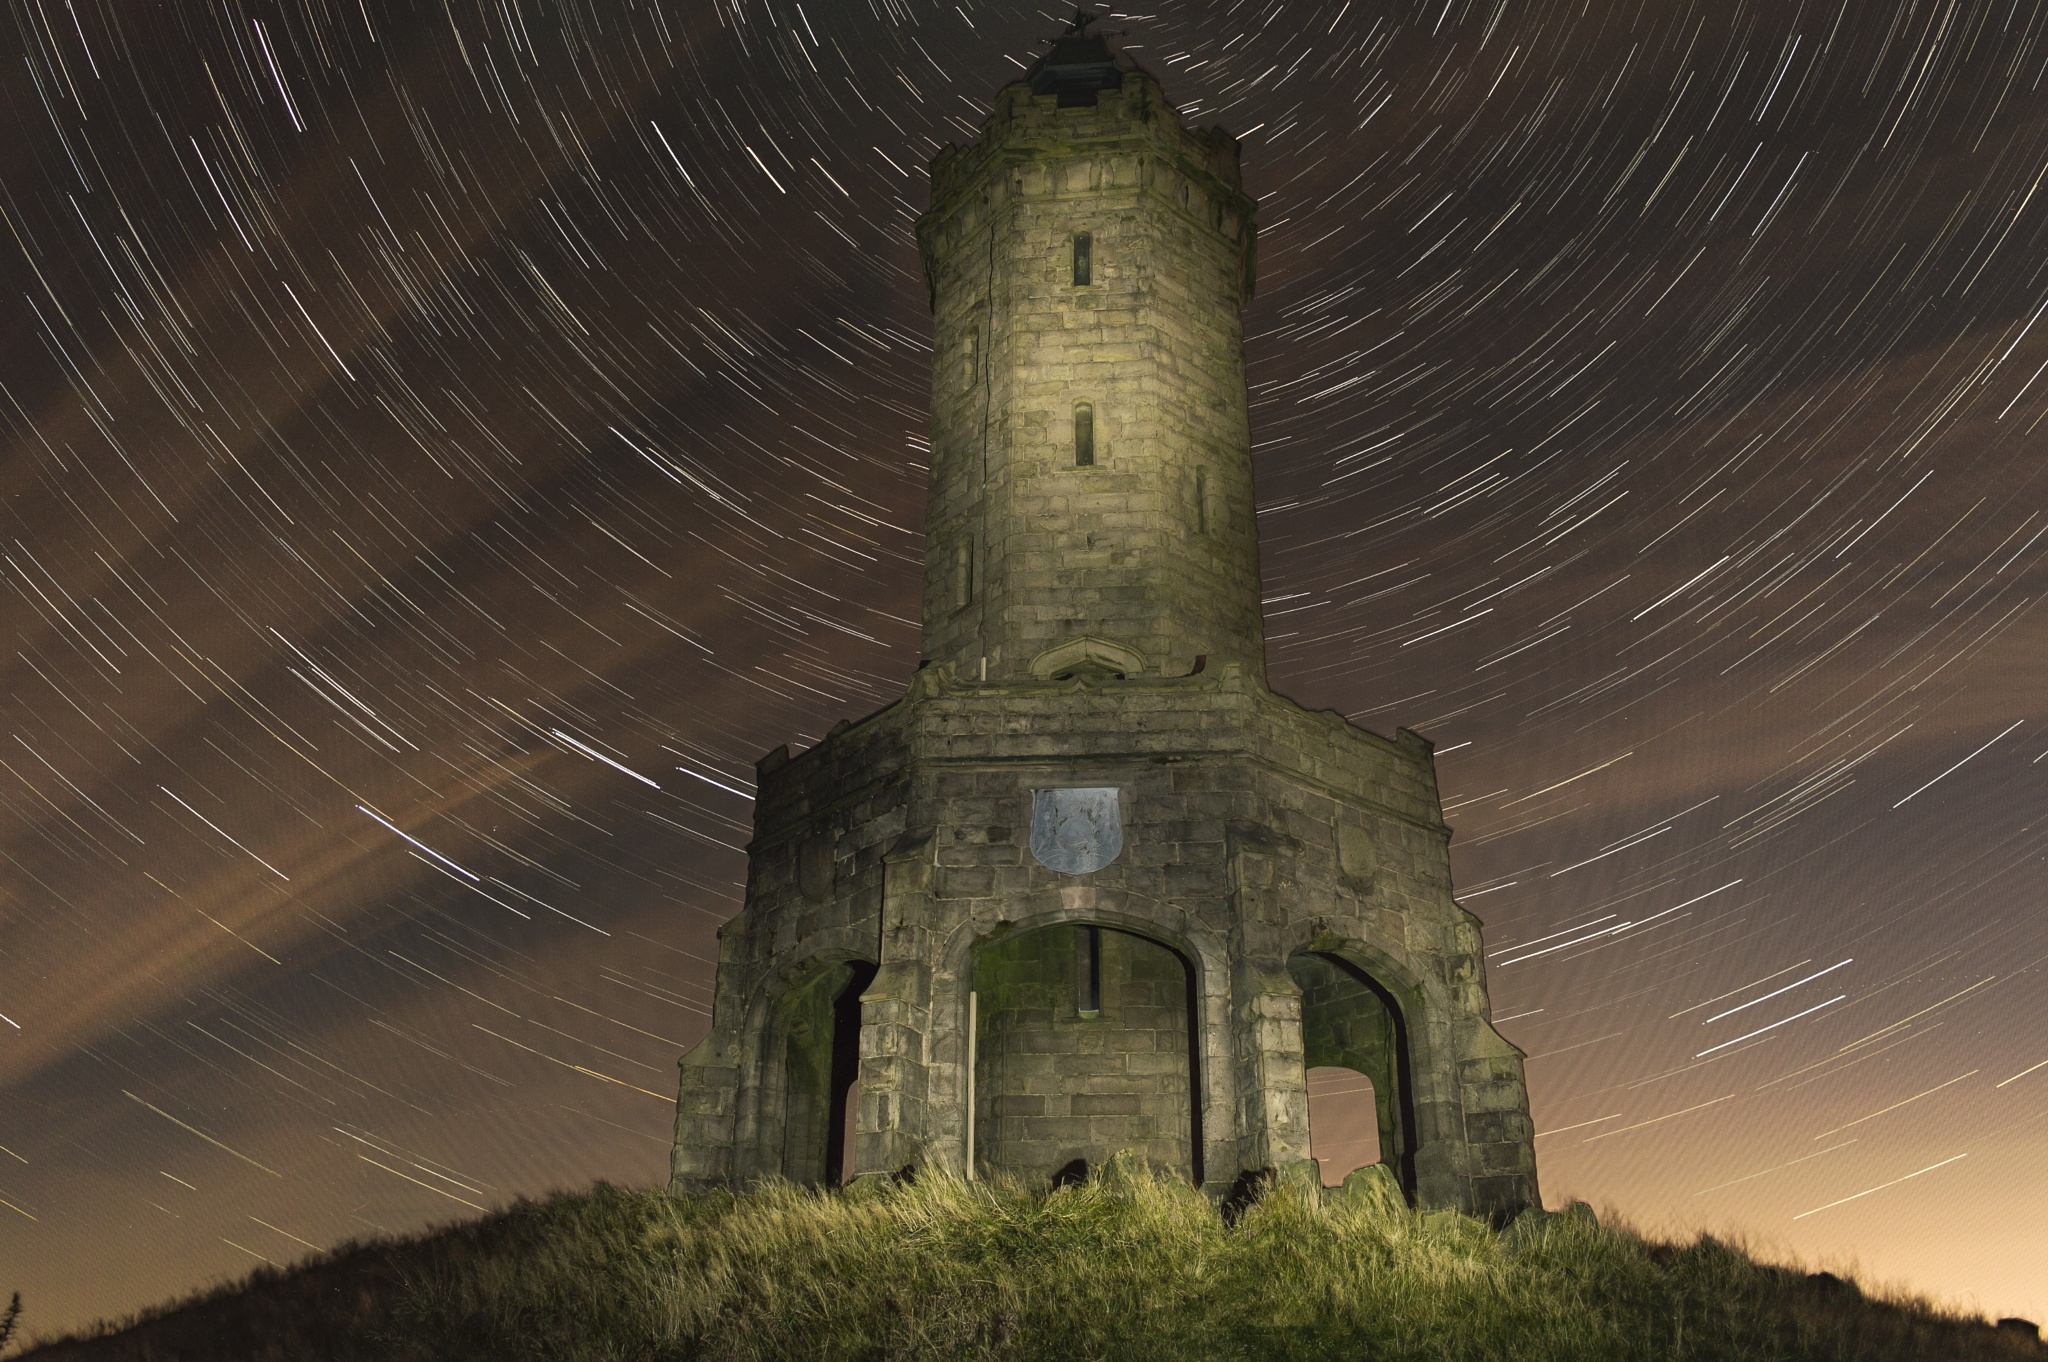 Darwen Tower Star Trails by Johnrutherford84